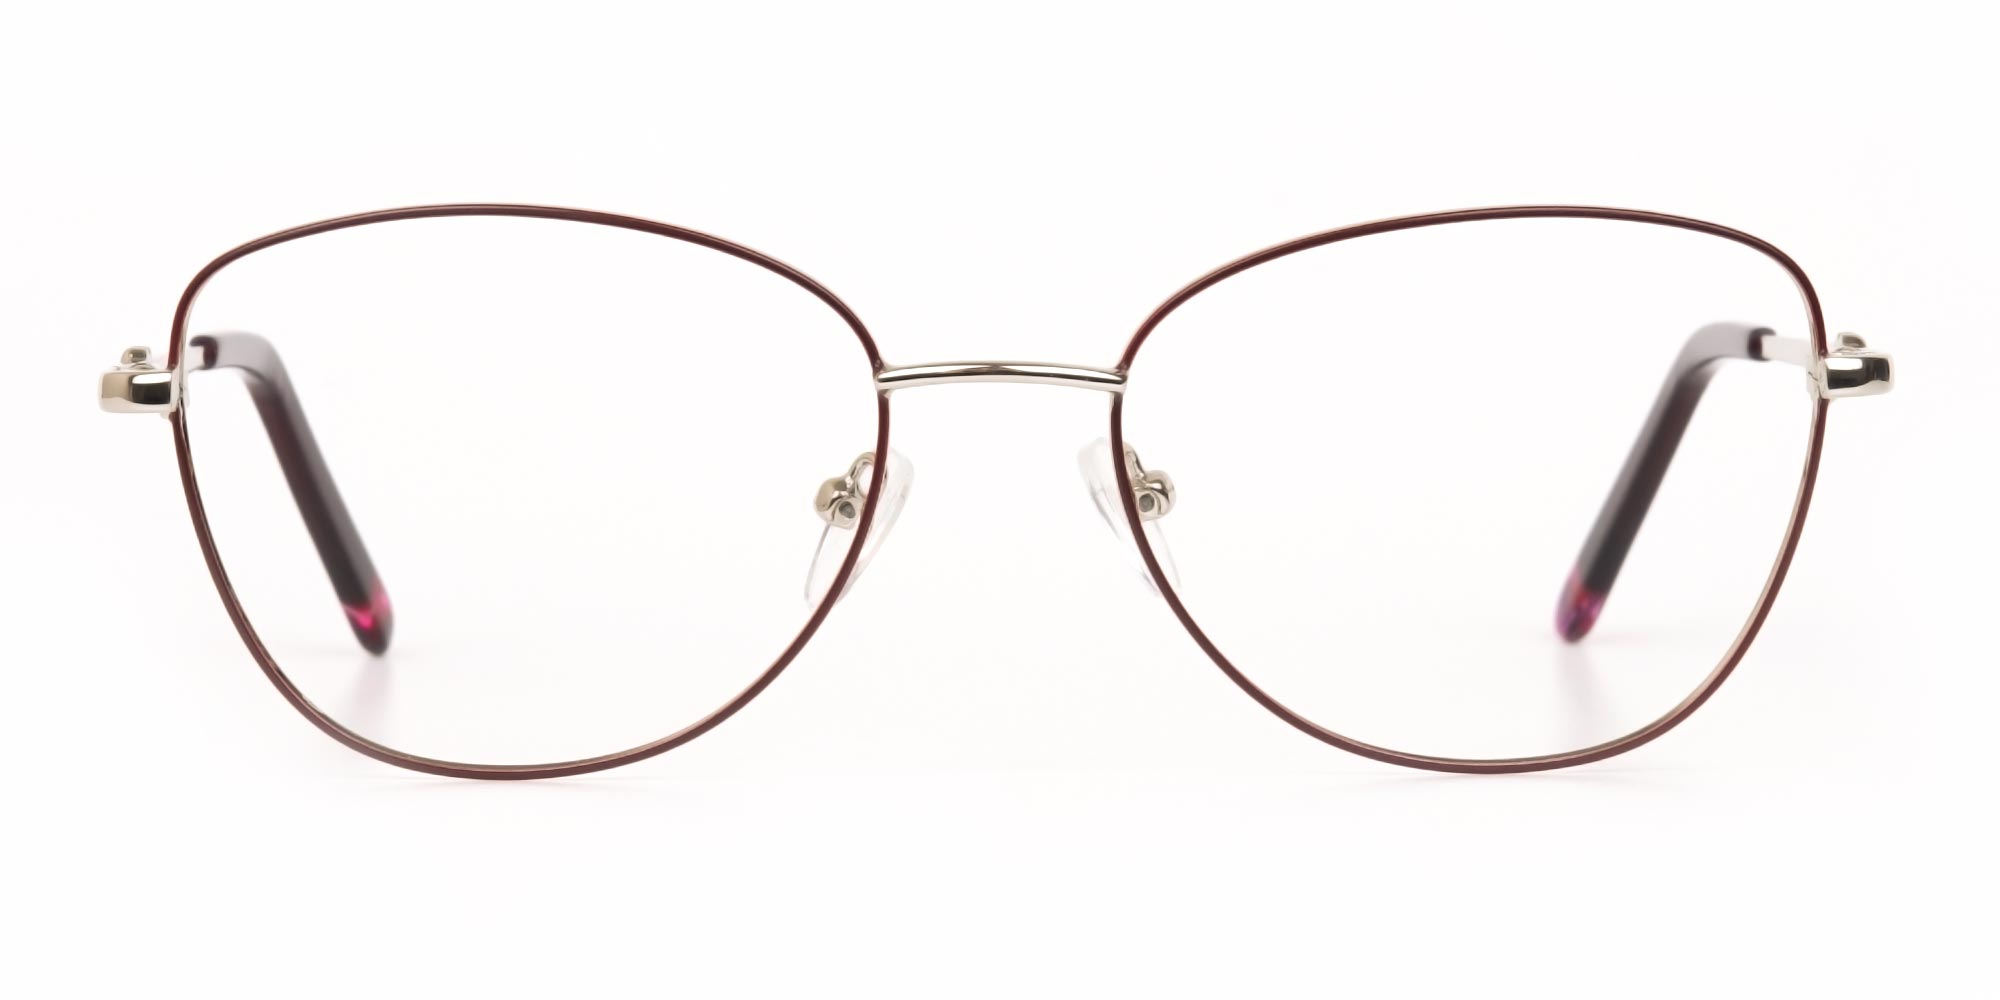 Burgundy and Silver Cateye Glasses